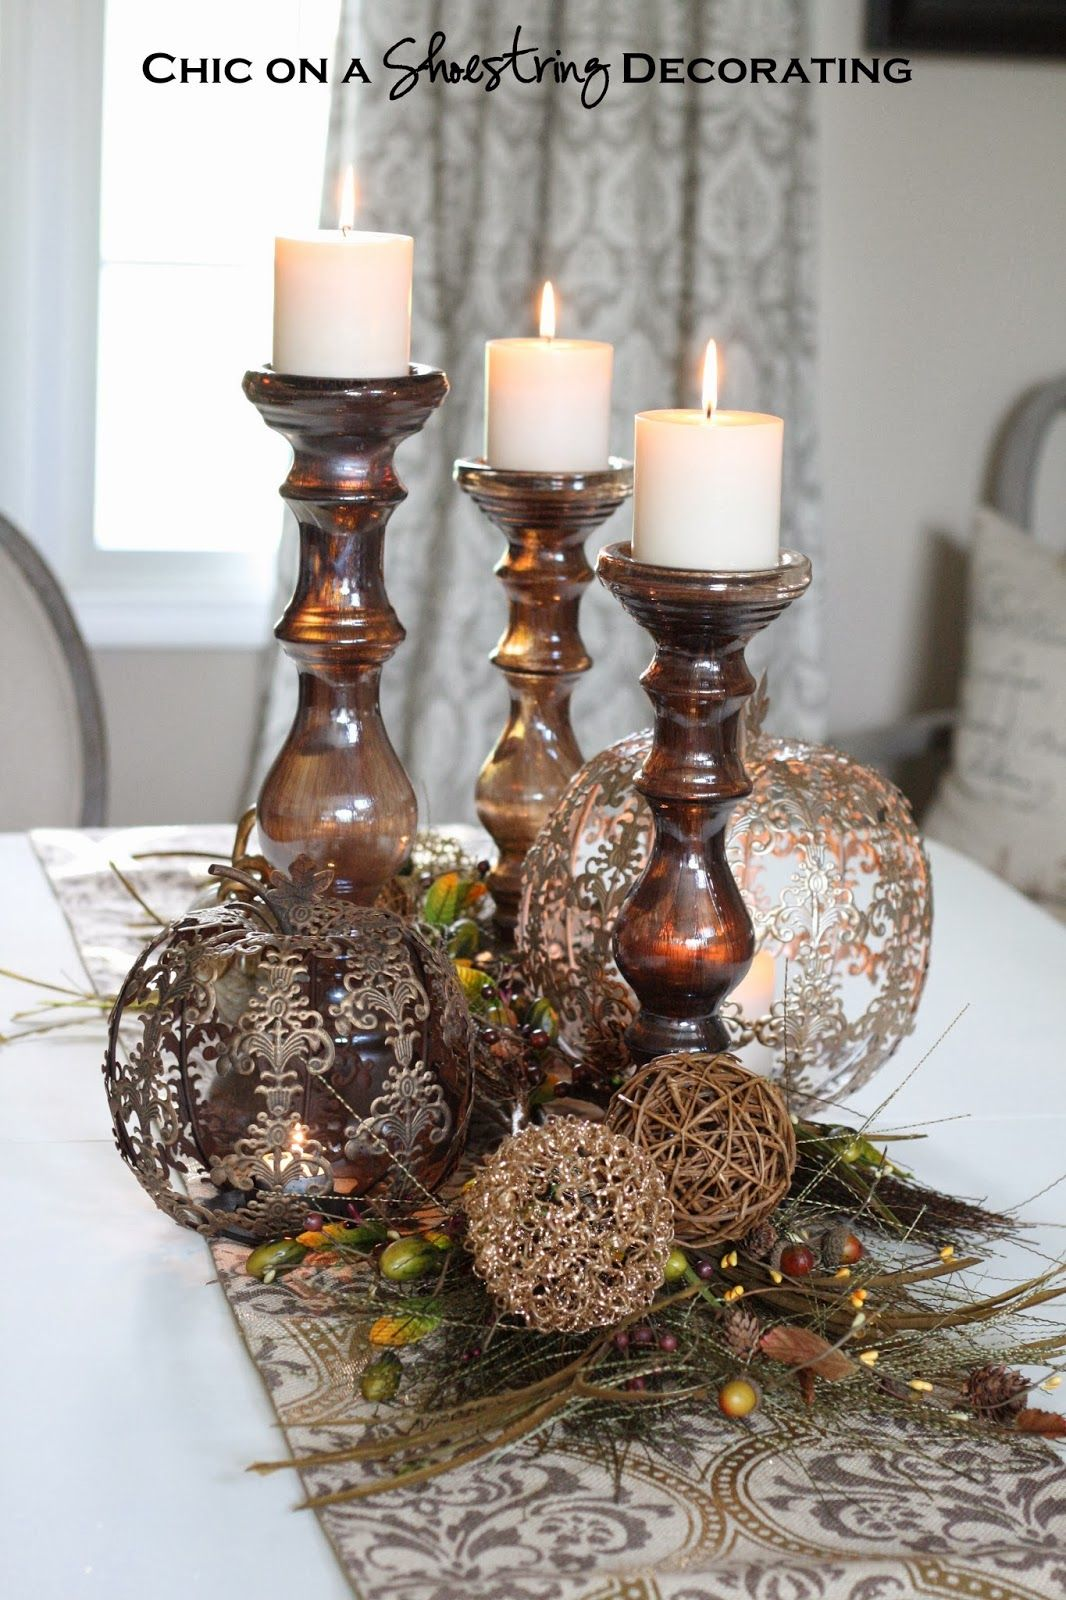 Pier 1 Imports Candlesticks